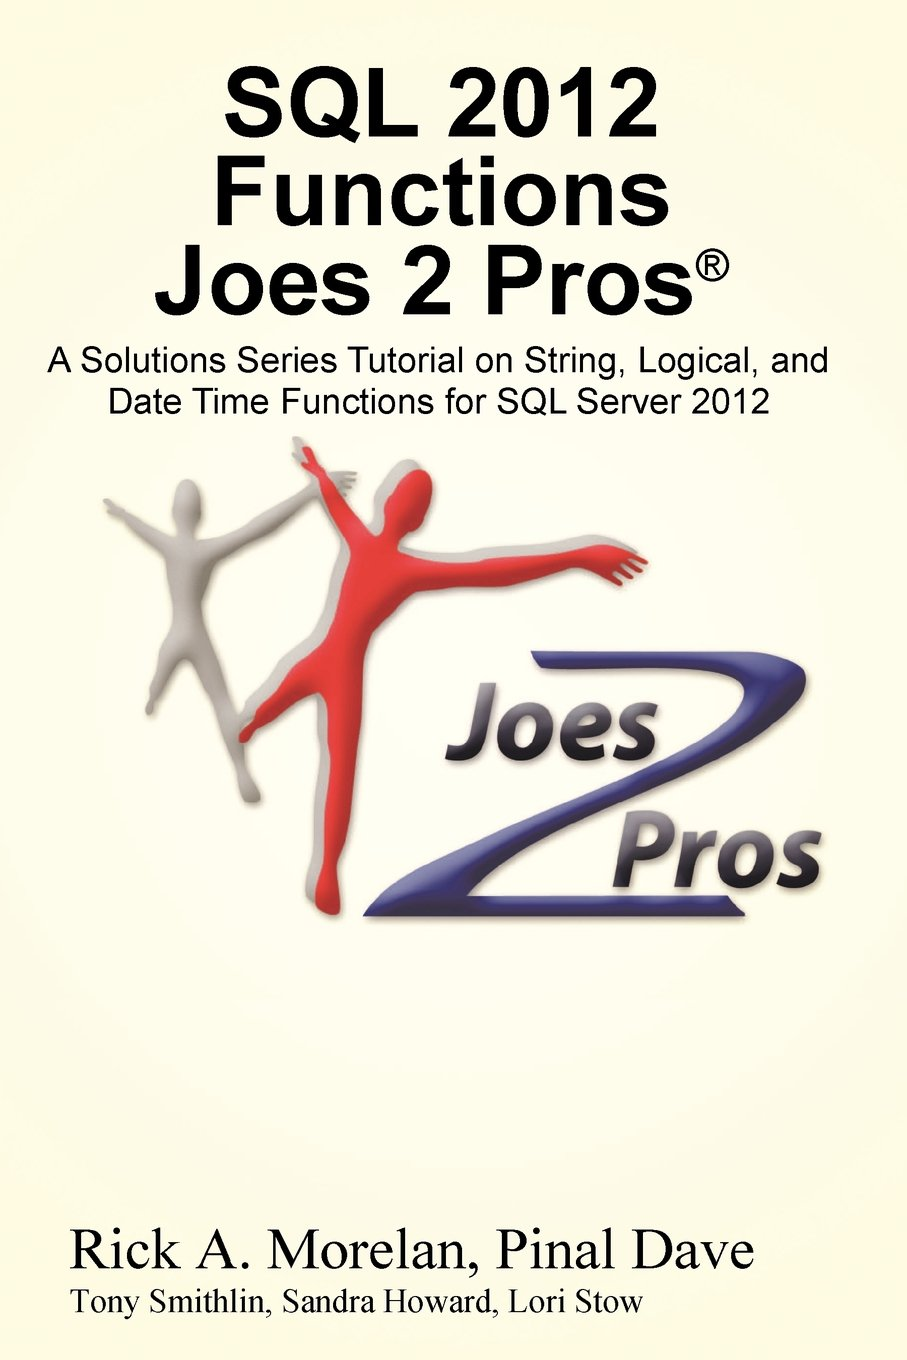 SQL 2012 Functions Joes Pros product image